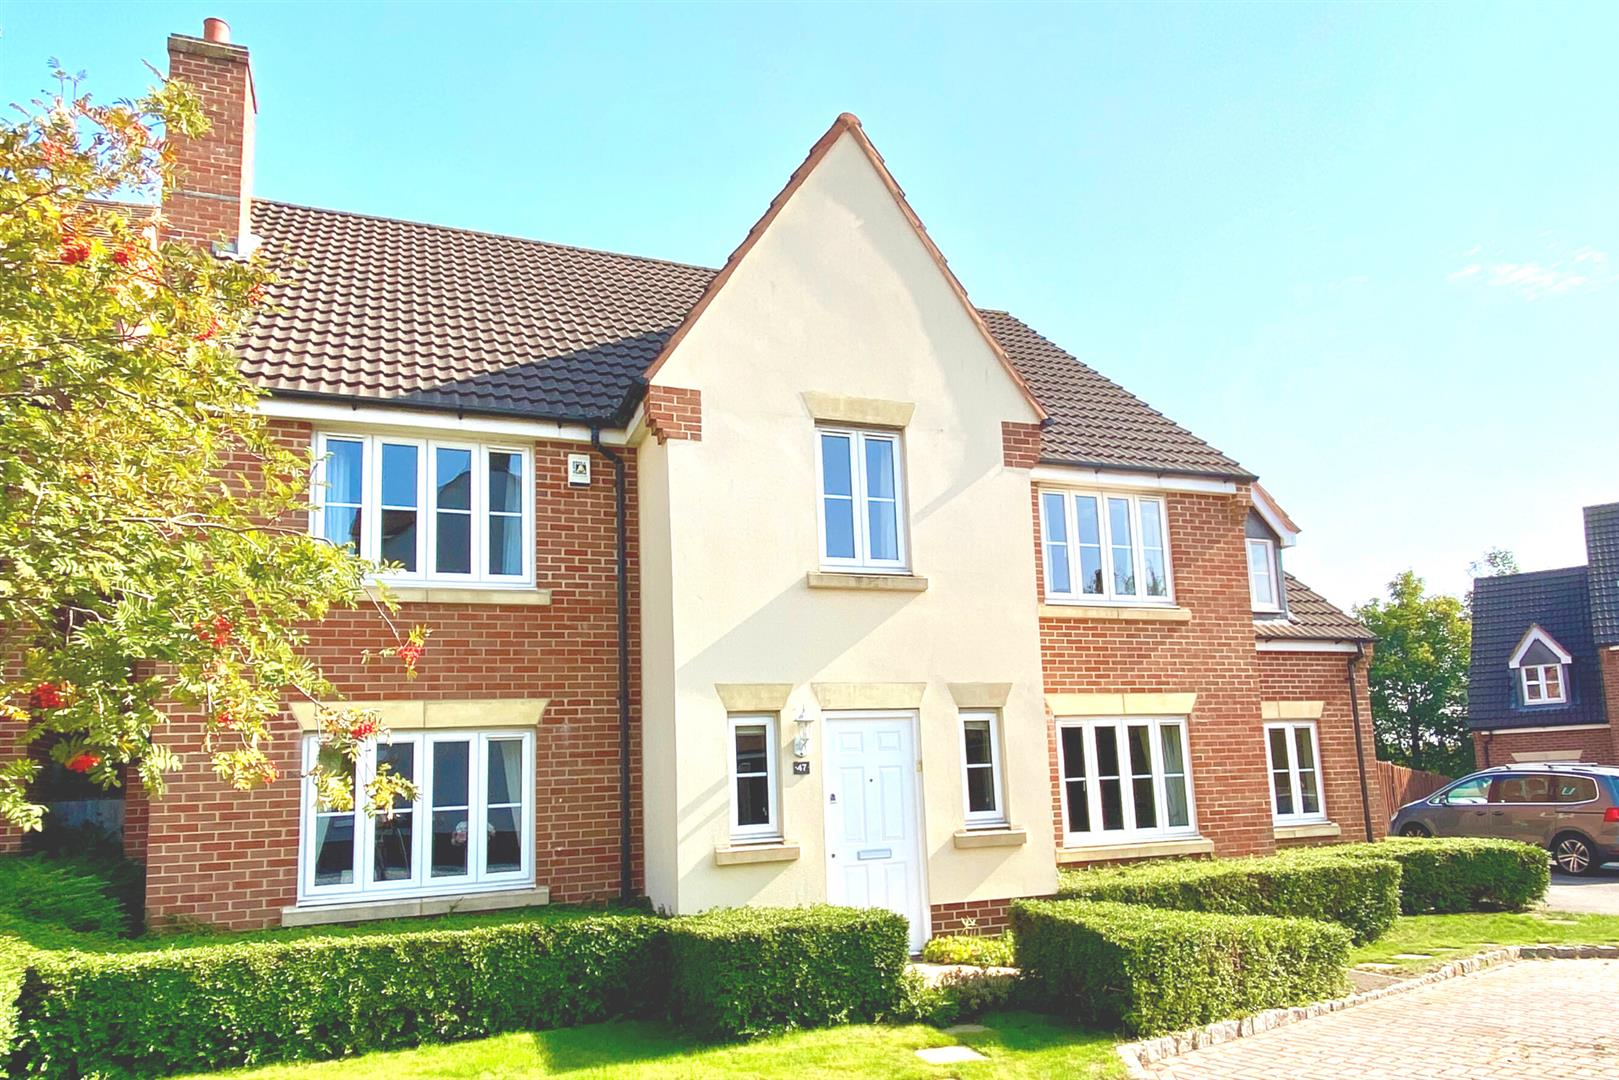 5 bed detached for sale in Shinfield 1